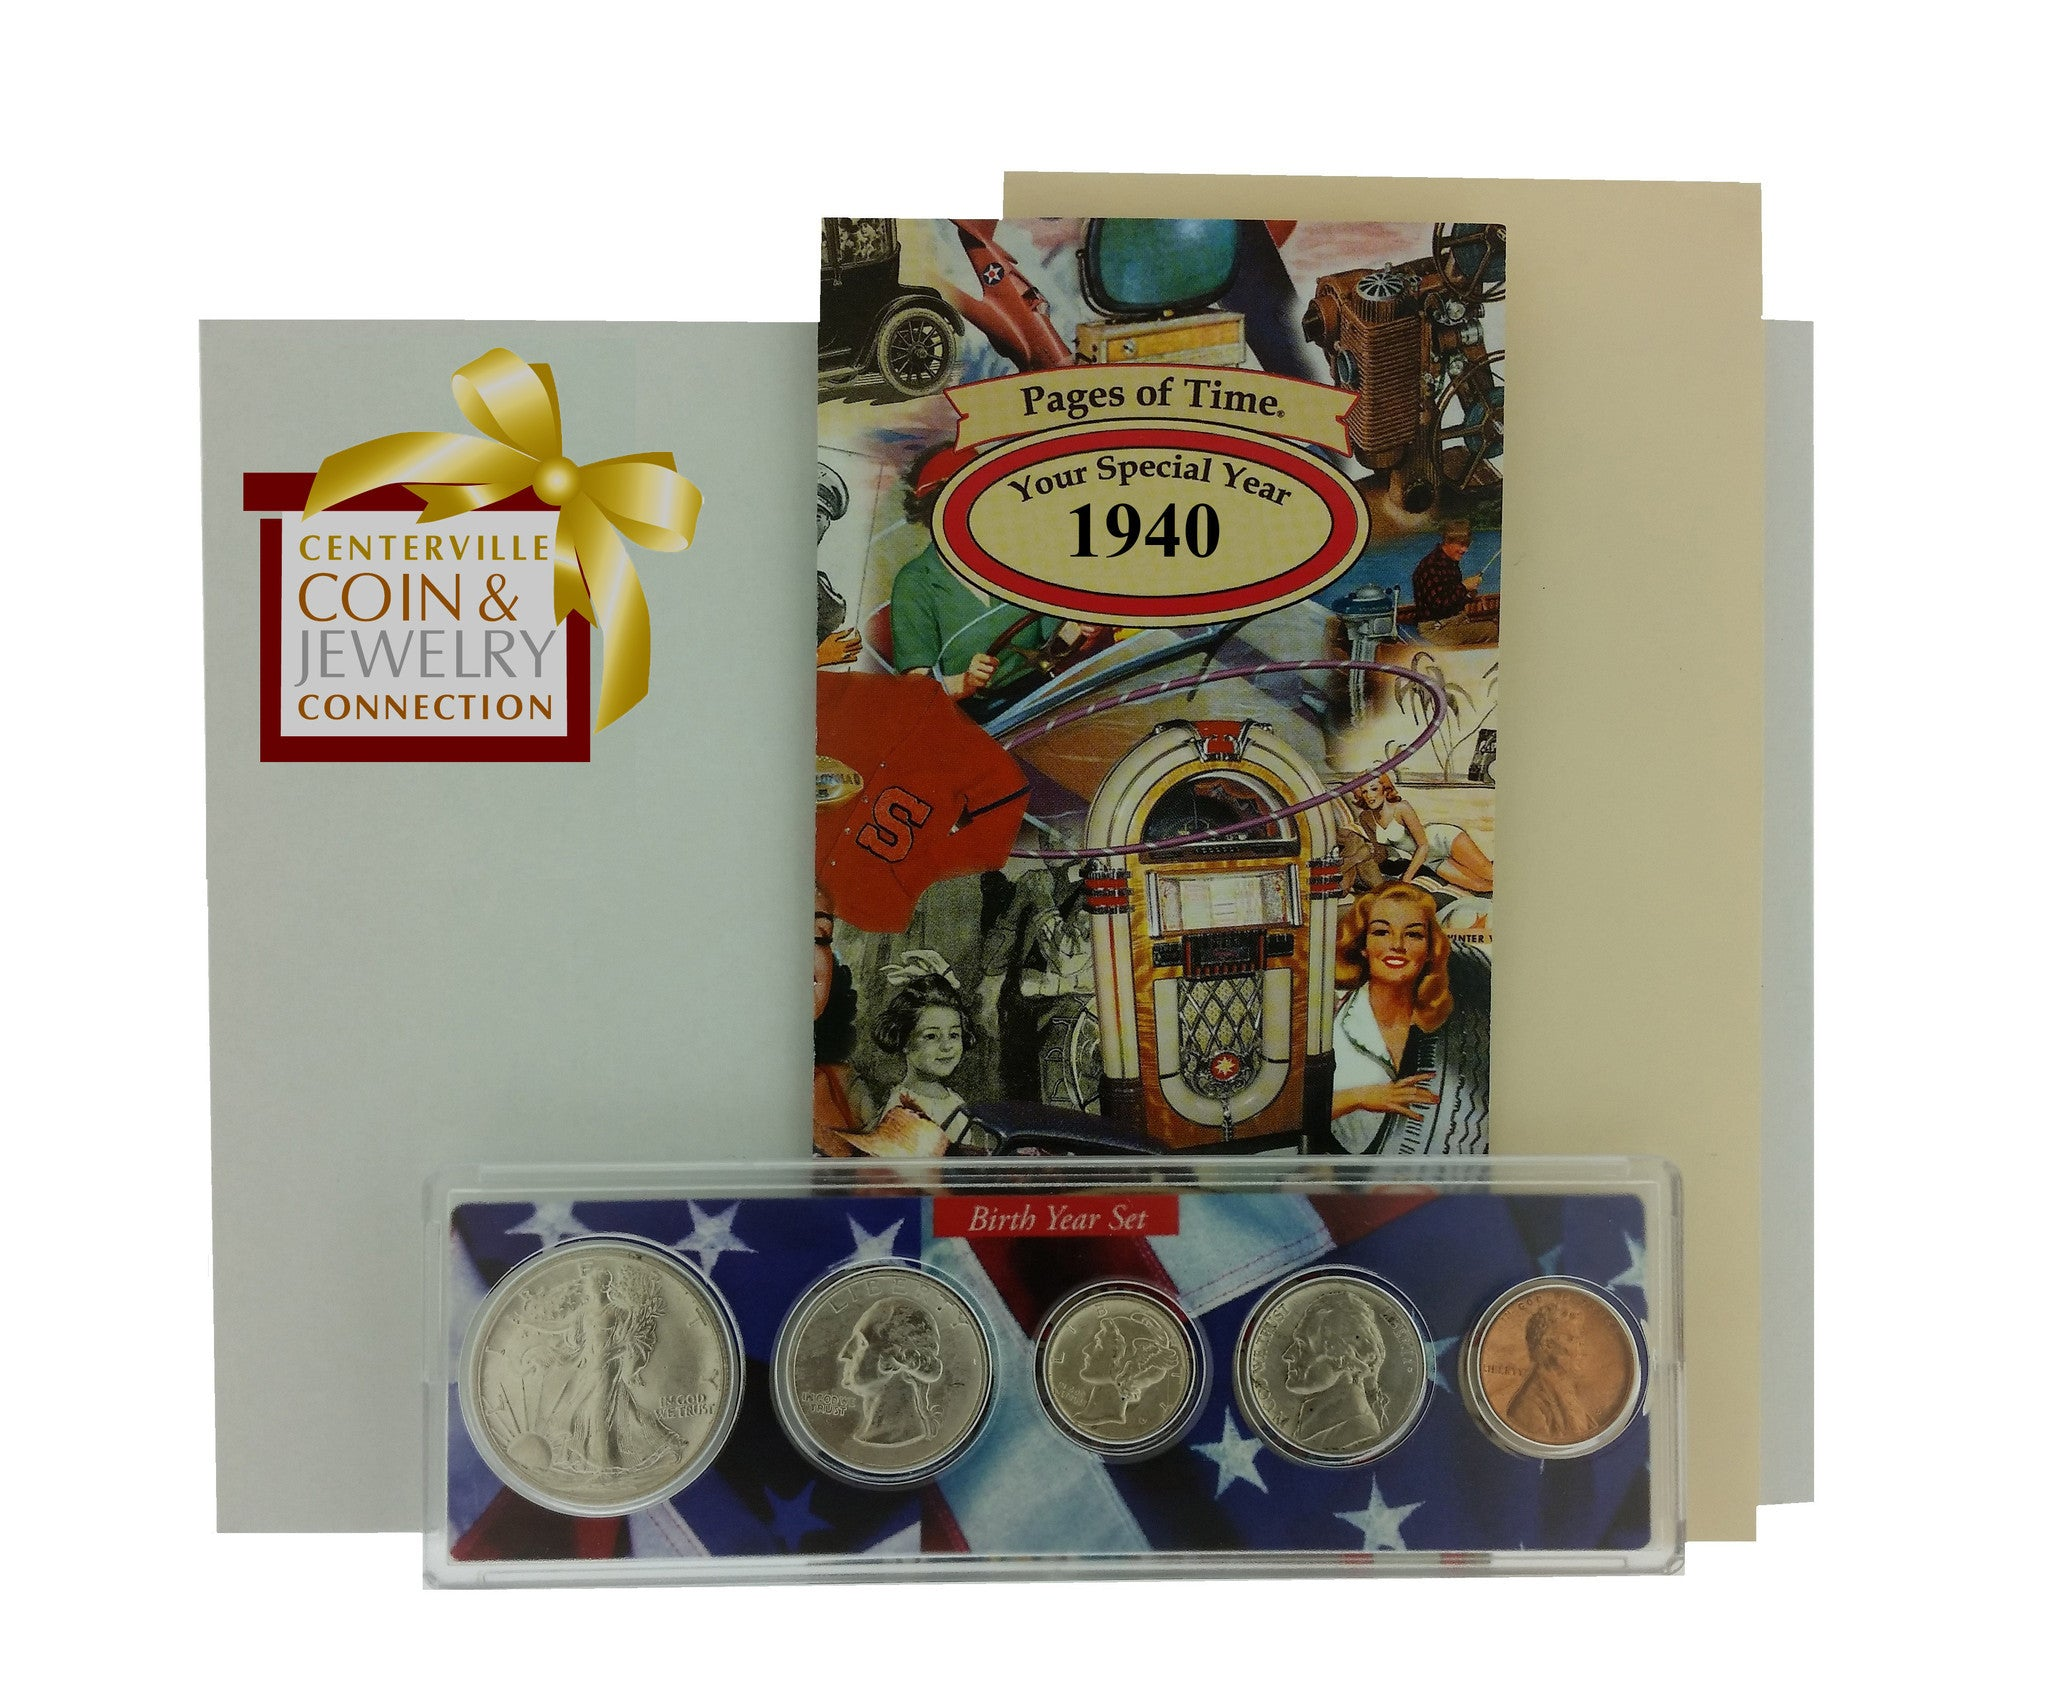 Year Coin Set & Greeting Card - Pi Style Boutique - Pi Style - Gifts & Decor - 1